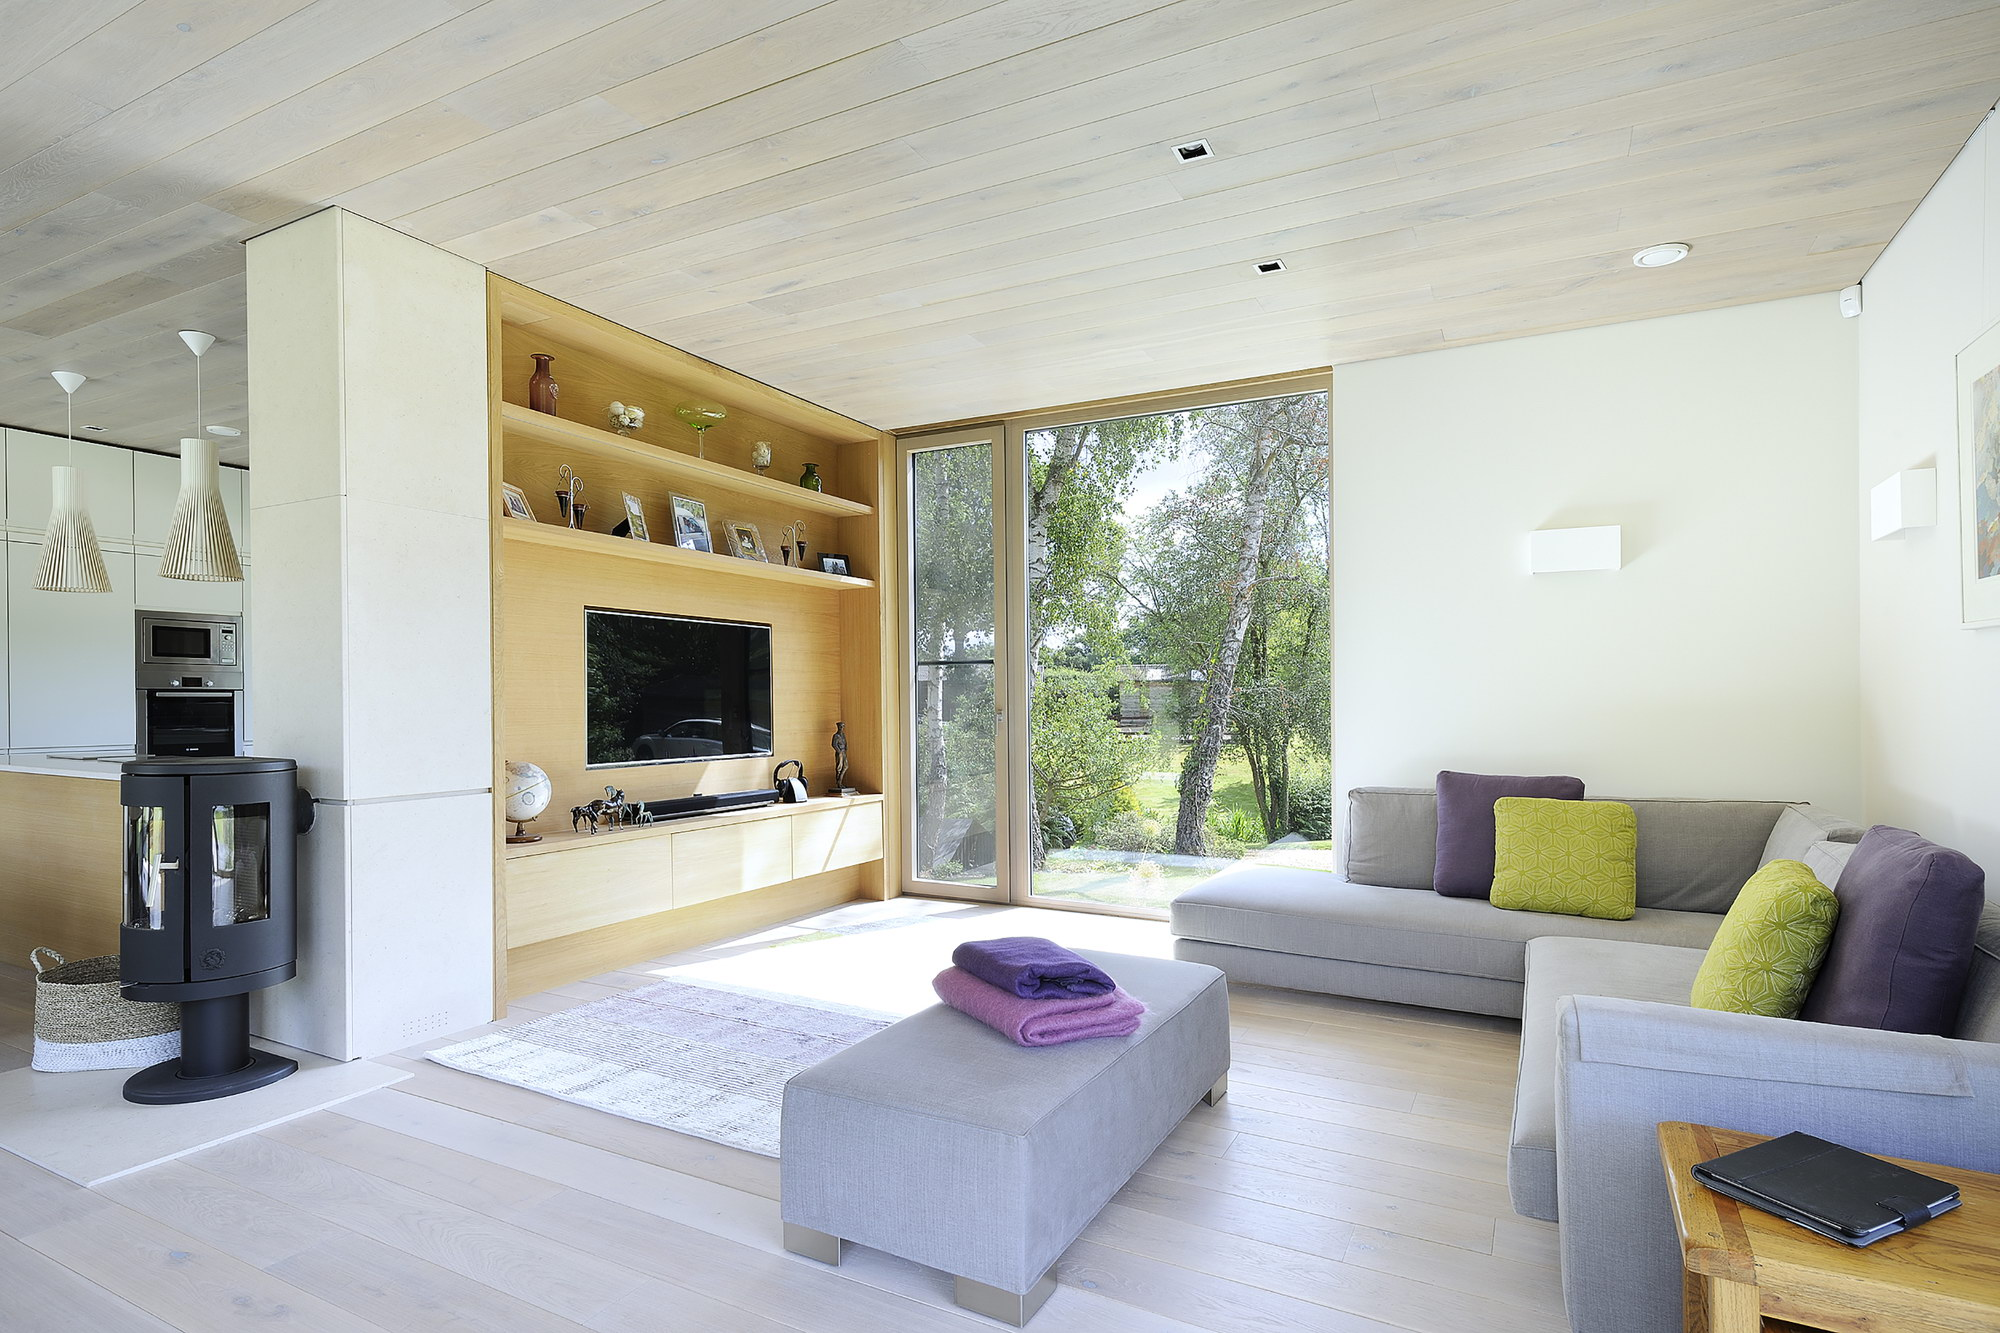 Forest Lodge – Mobile Dwelling by PAD studio